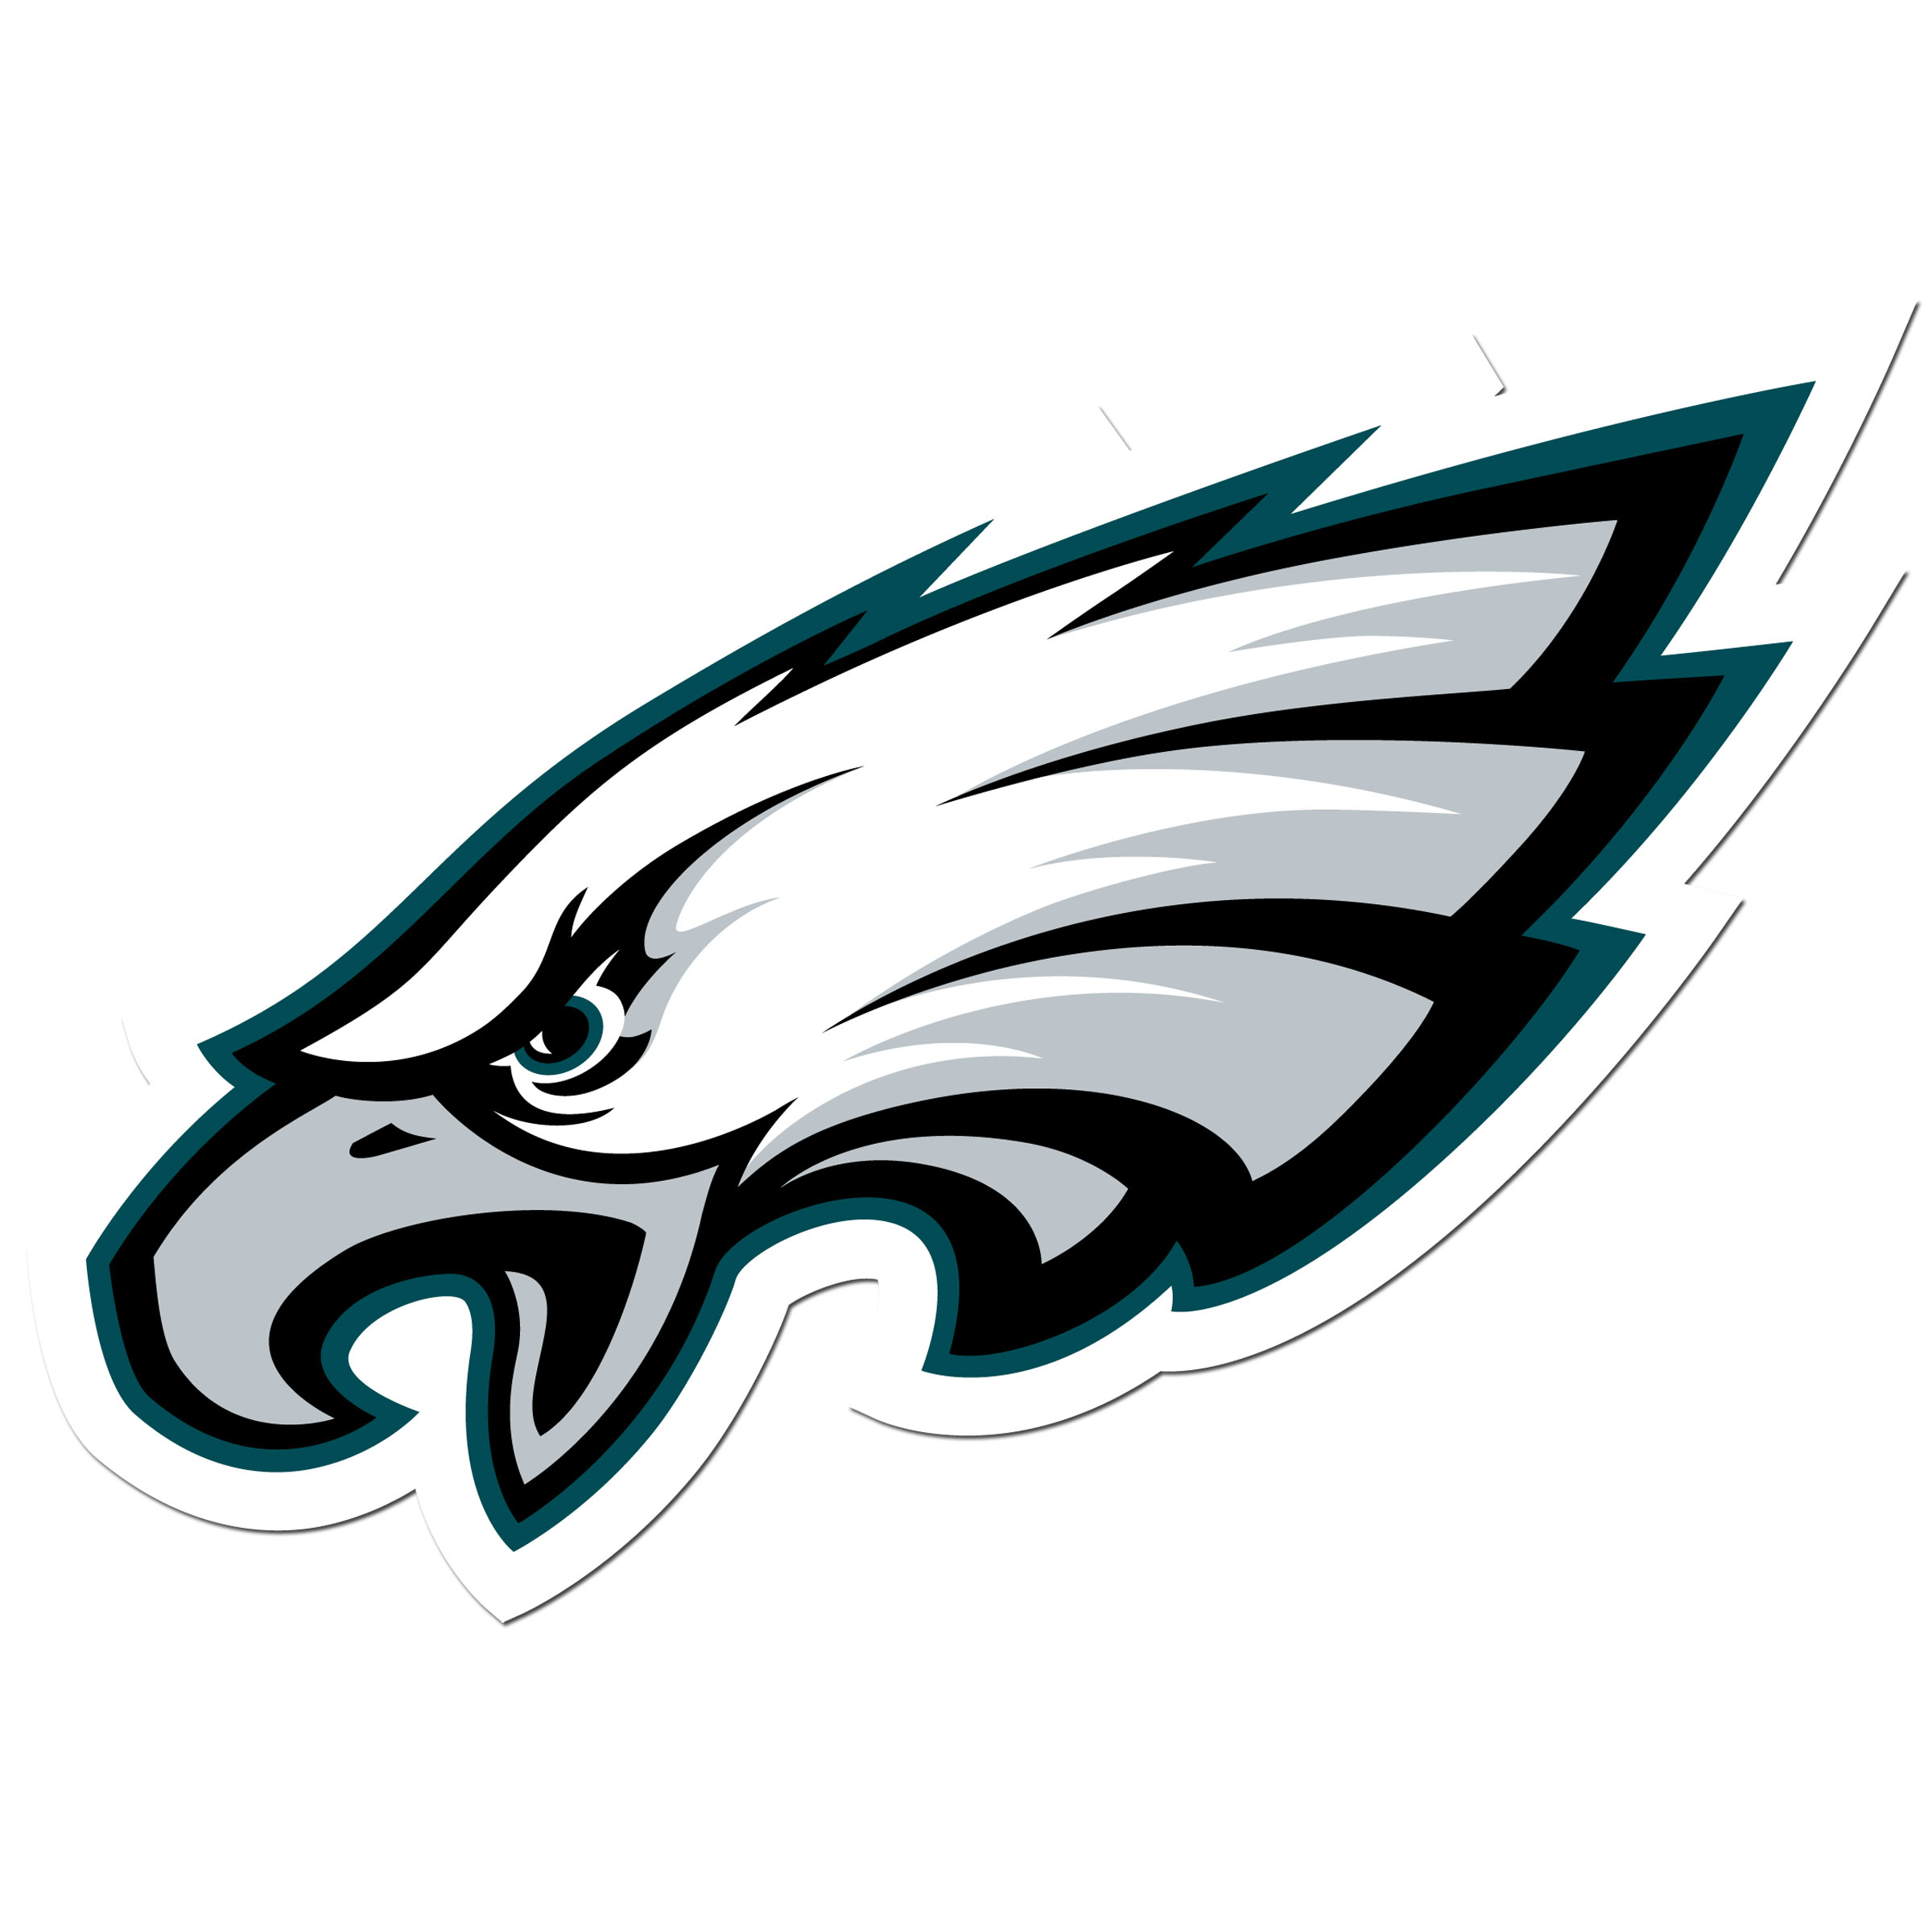 Philadelphia Eagles 8 inch Auto Decal - This bold, 8 inch Philadelphia Eagles is a great way to show off your team pride! The low tack vinyl decal is easily positioned and adjusted to make sure you get that logo in just the right spot on your vehicle. Designed to be used on the outside of the window.